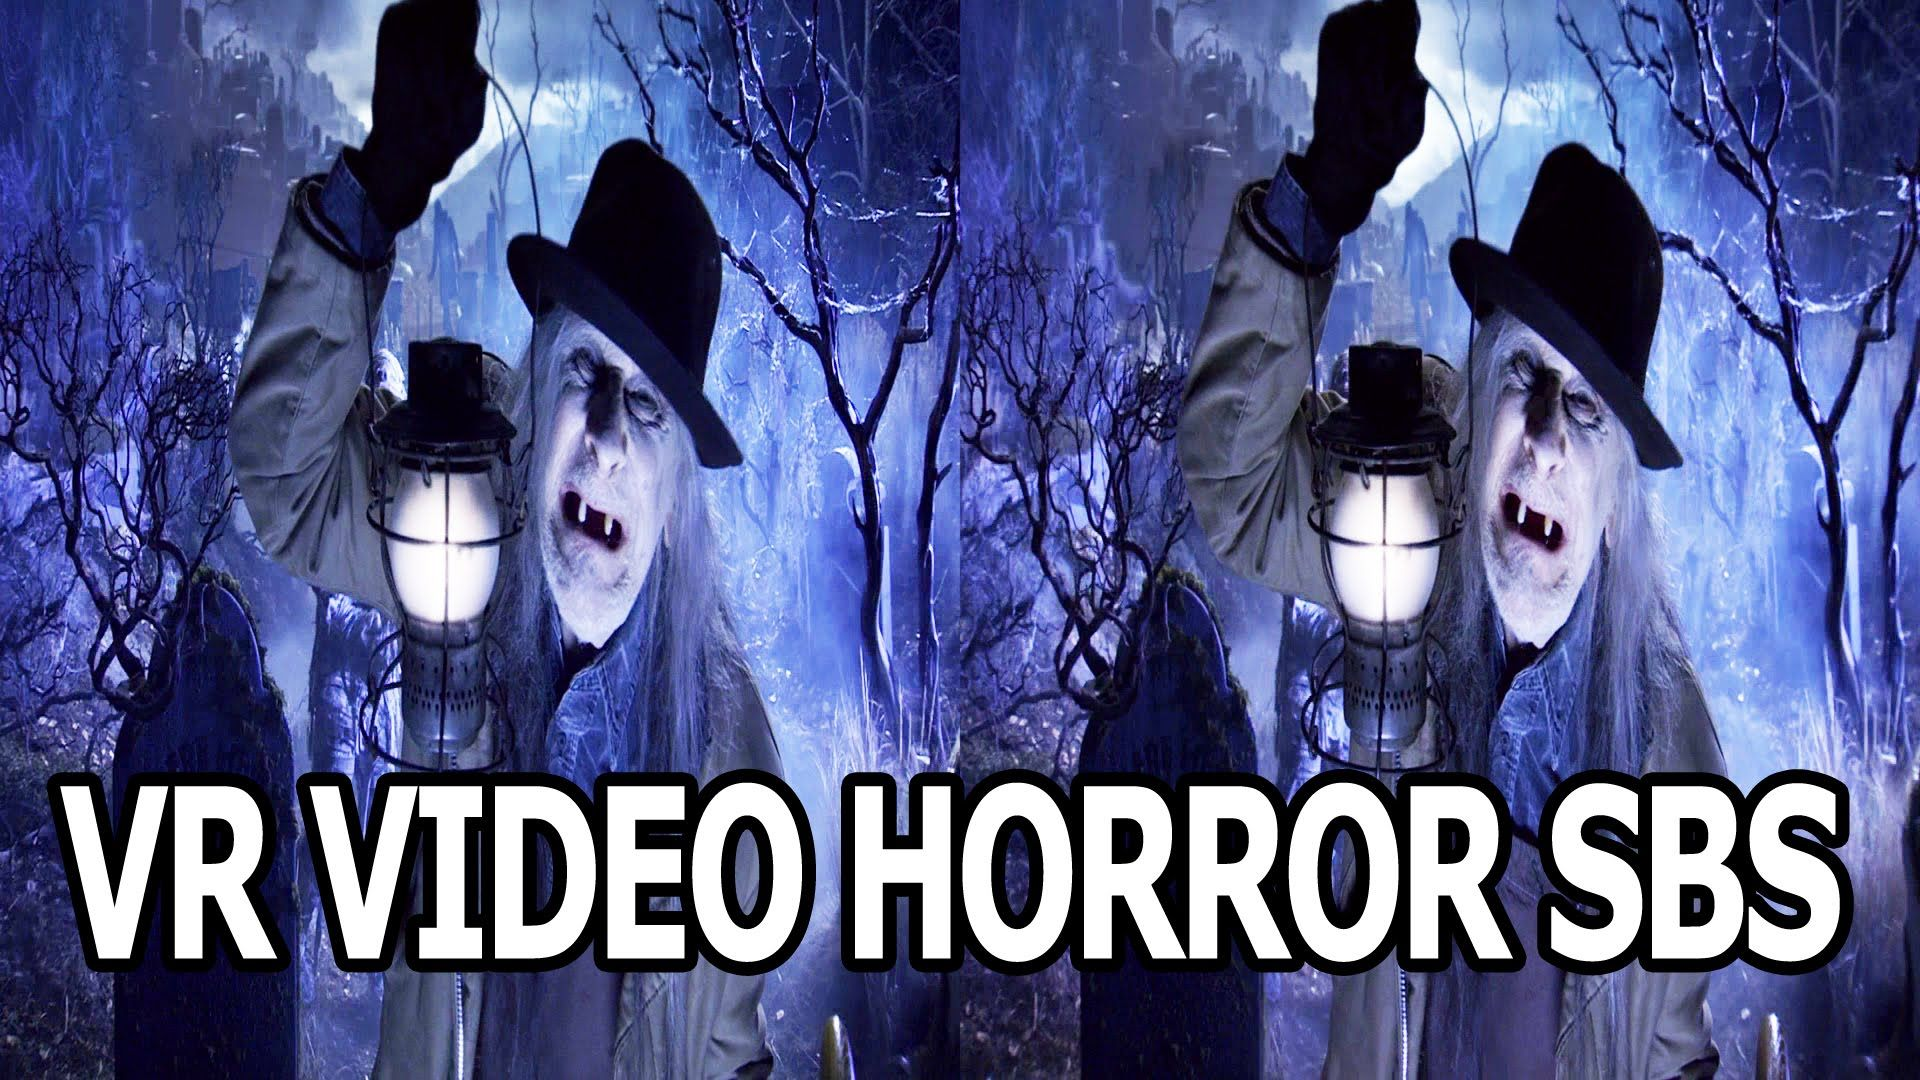 Vr Video Horror 3d Sbs 1080p Virtual Reality Video